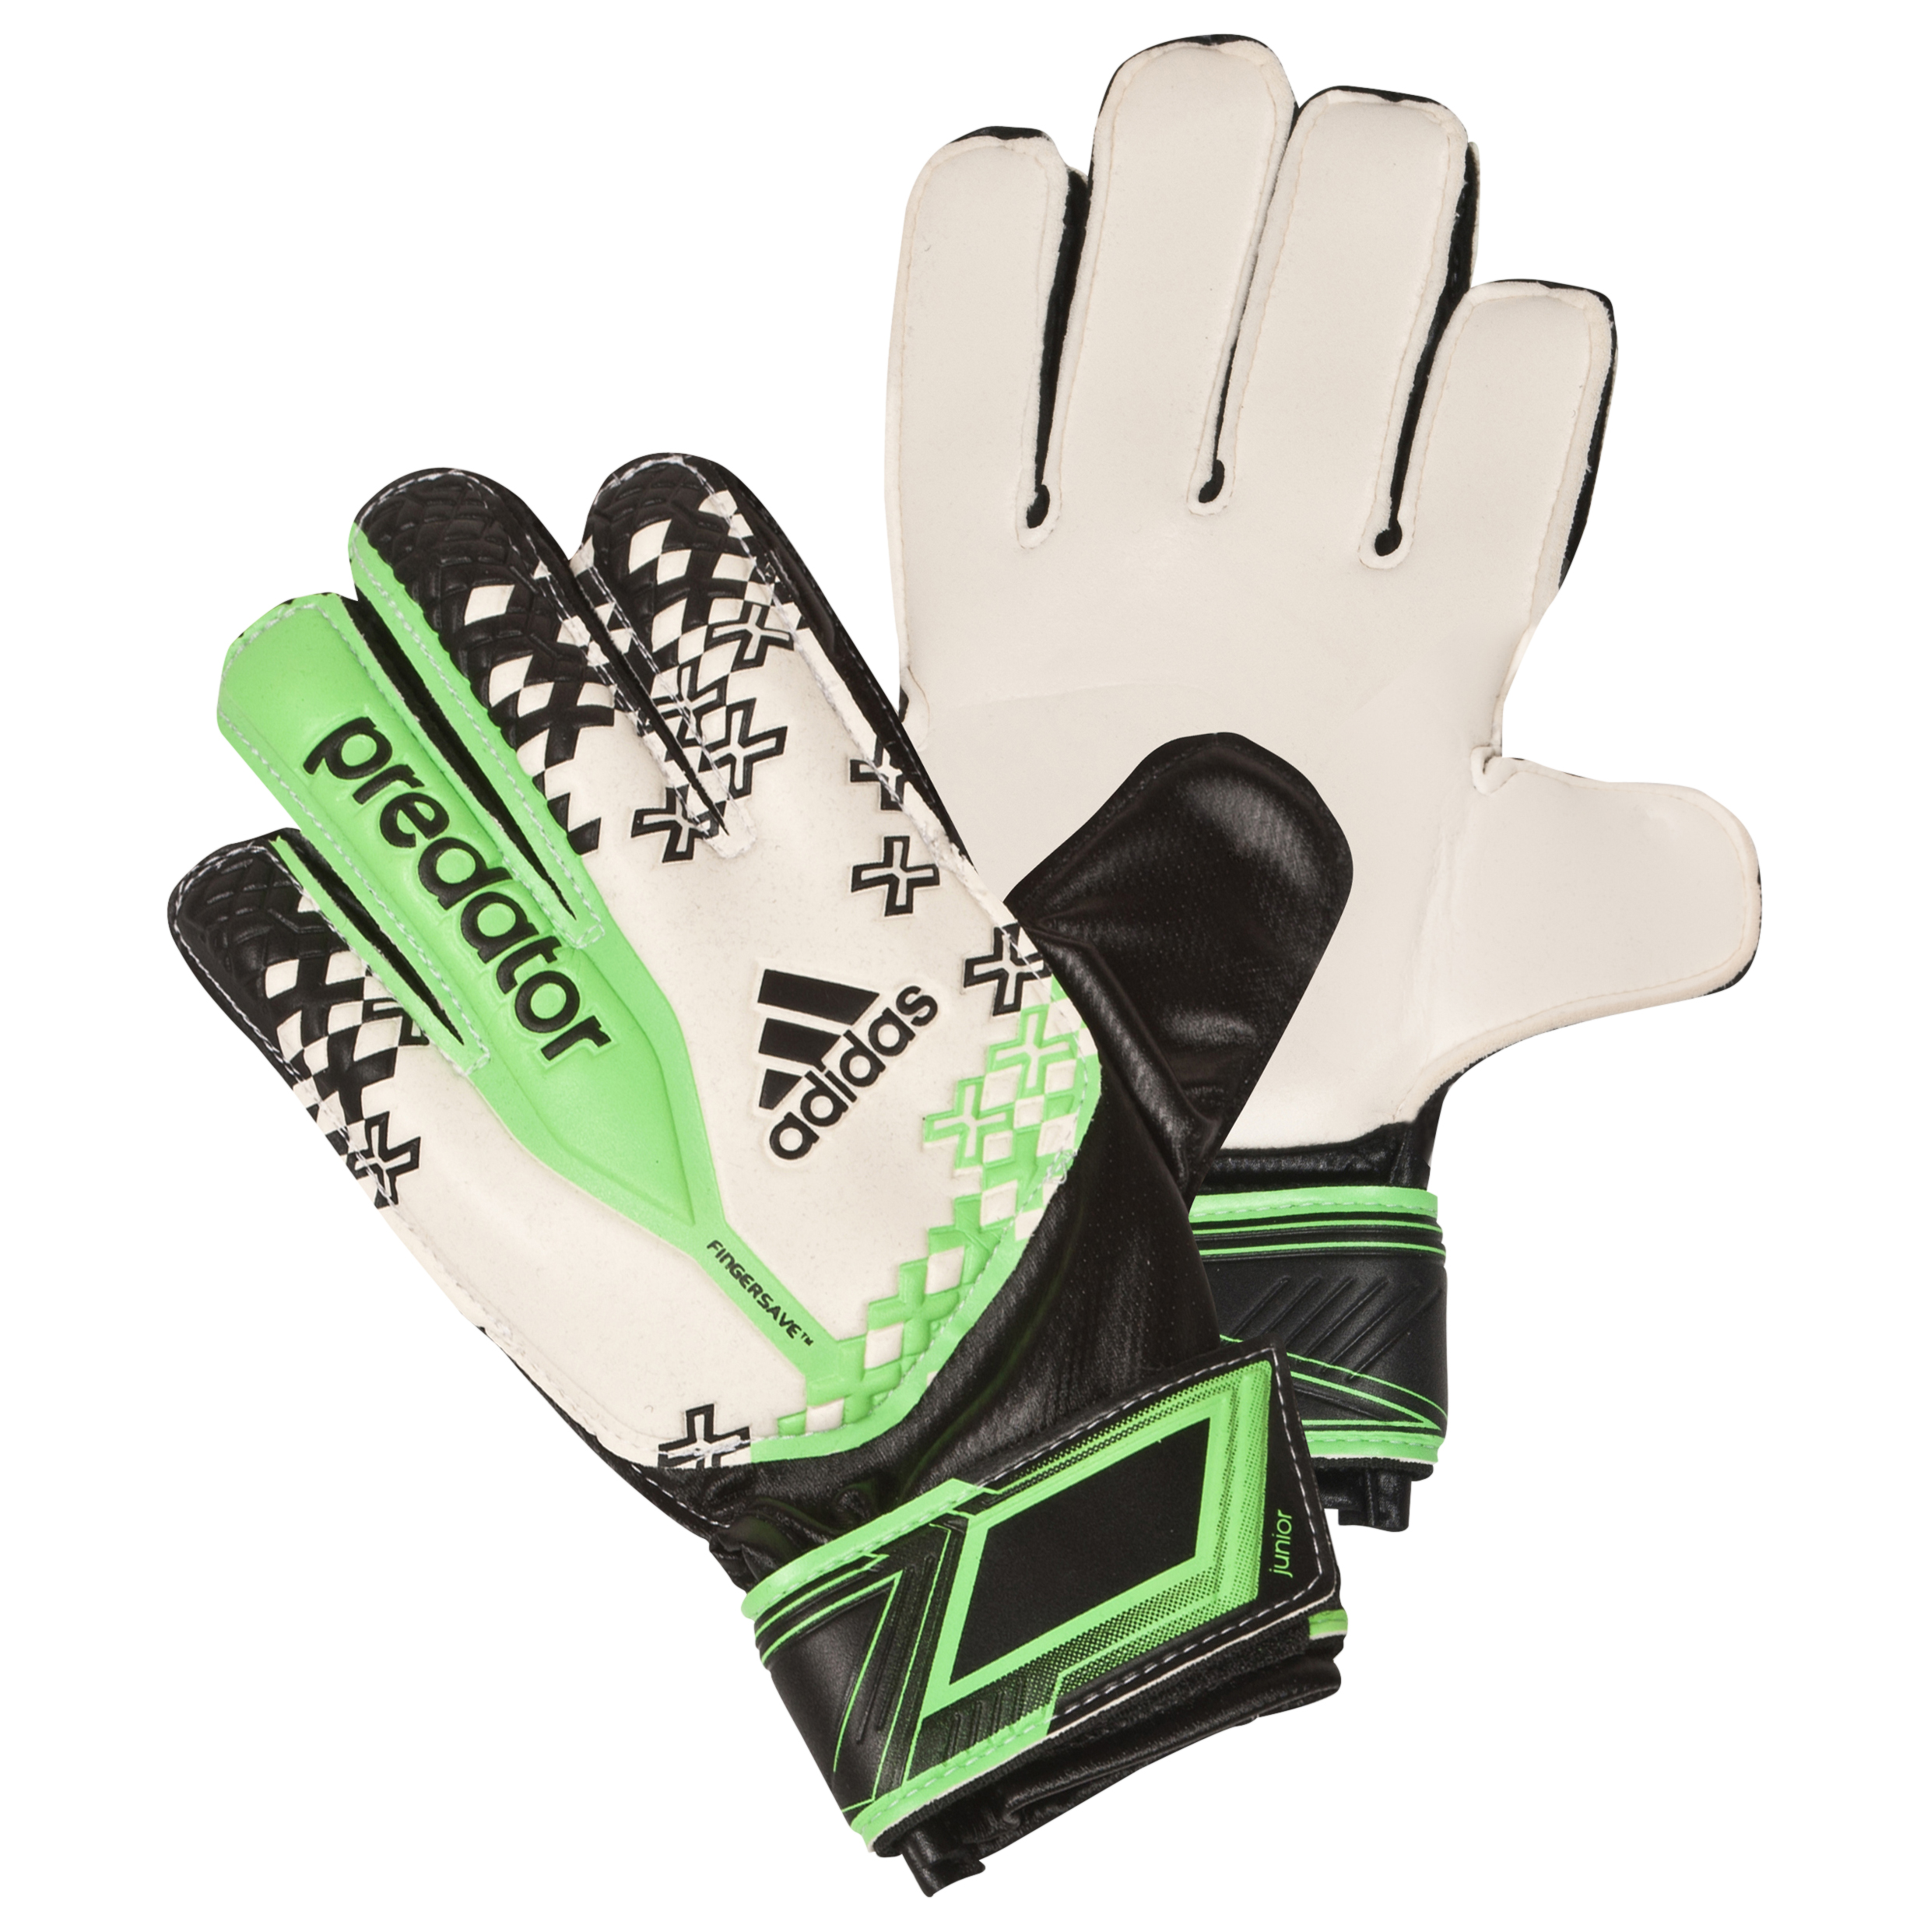 Adidas Predator Finger Save Goalkeeper Gloves White